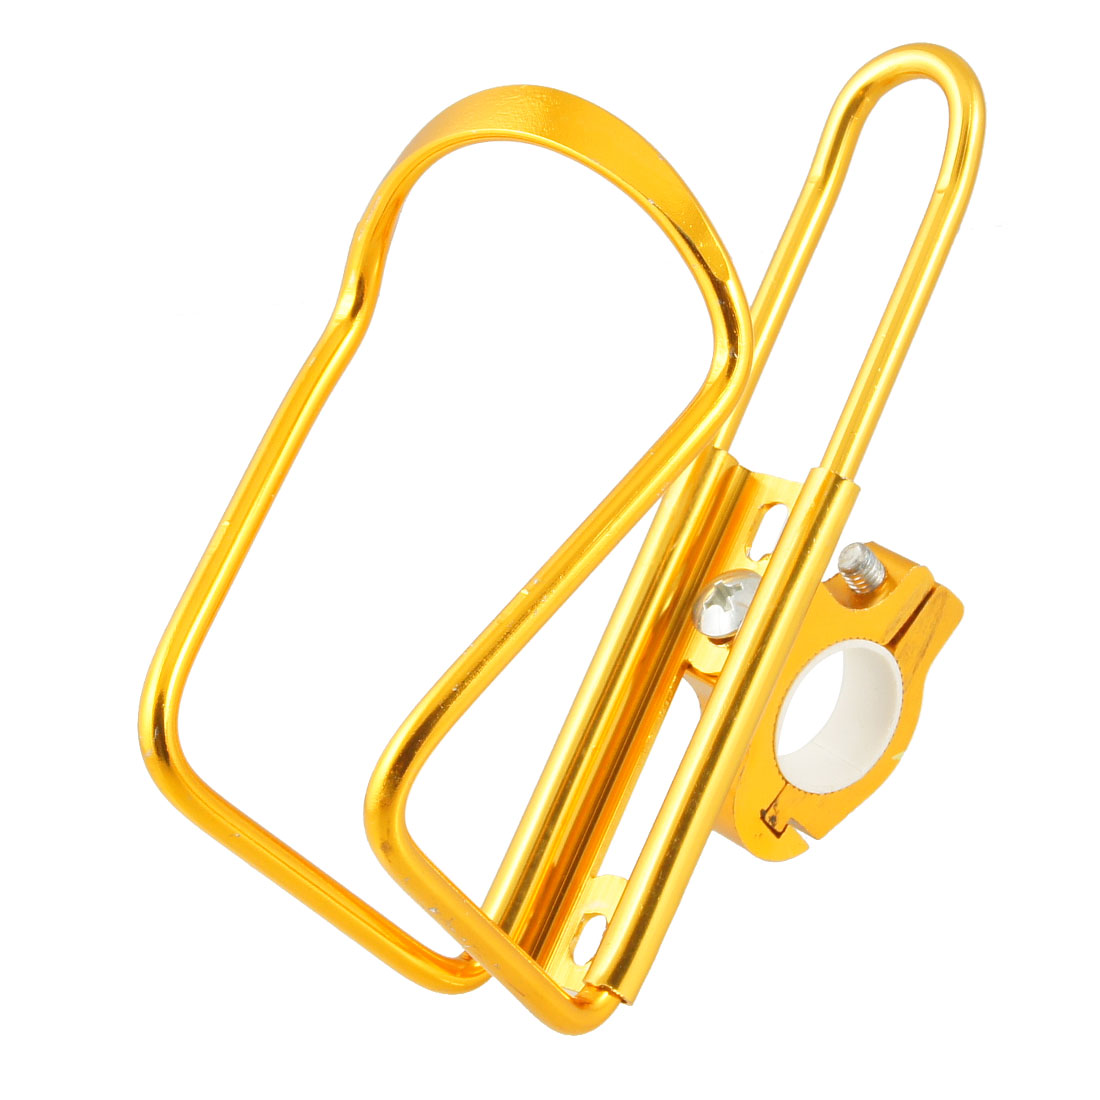 Gold Tone Metal Drink Water Bottle Holder Cage Rack for Bike